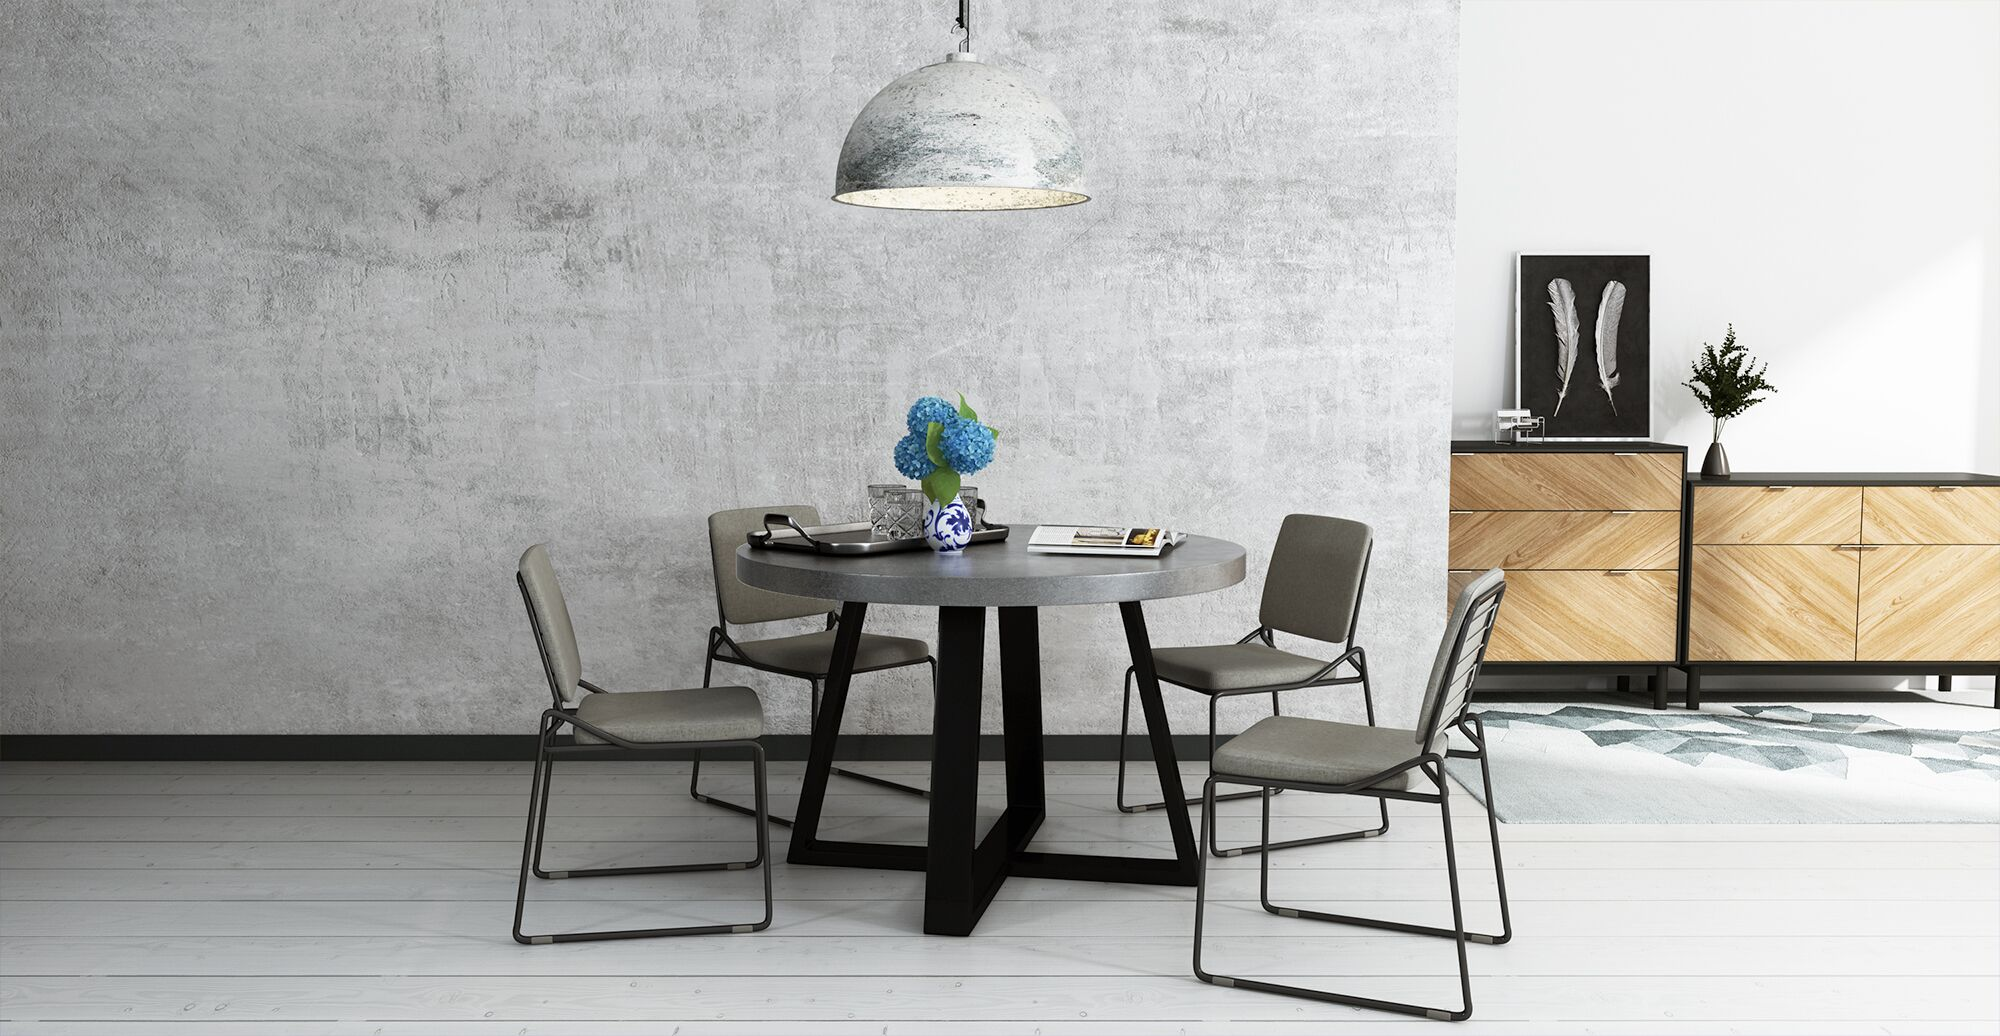 Metal framework table and chairs